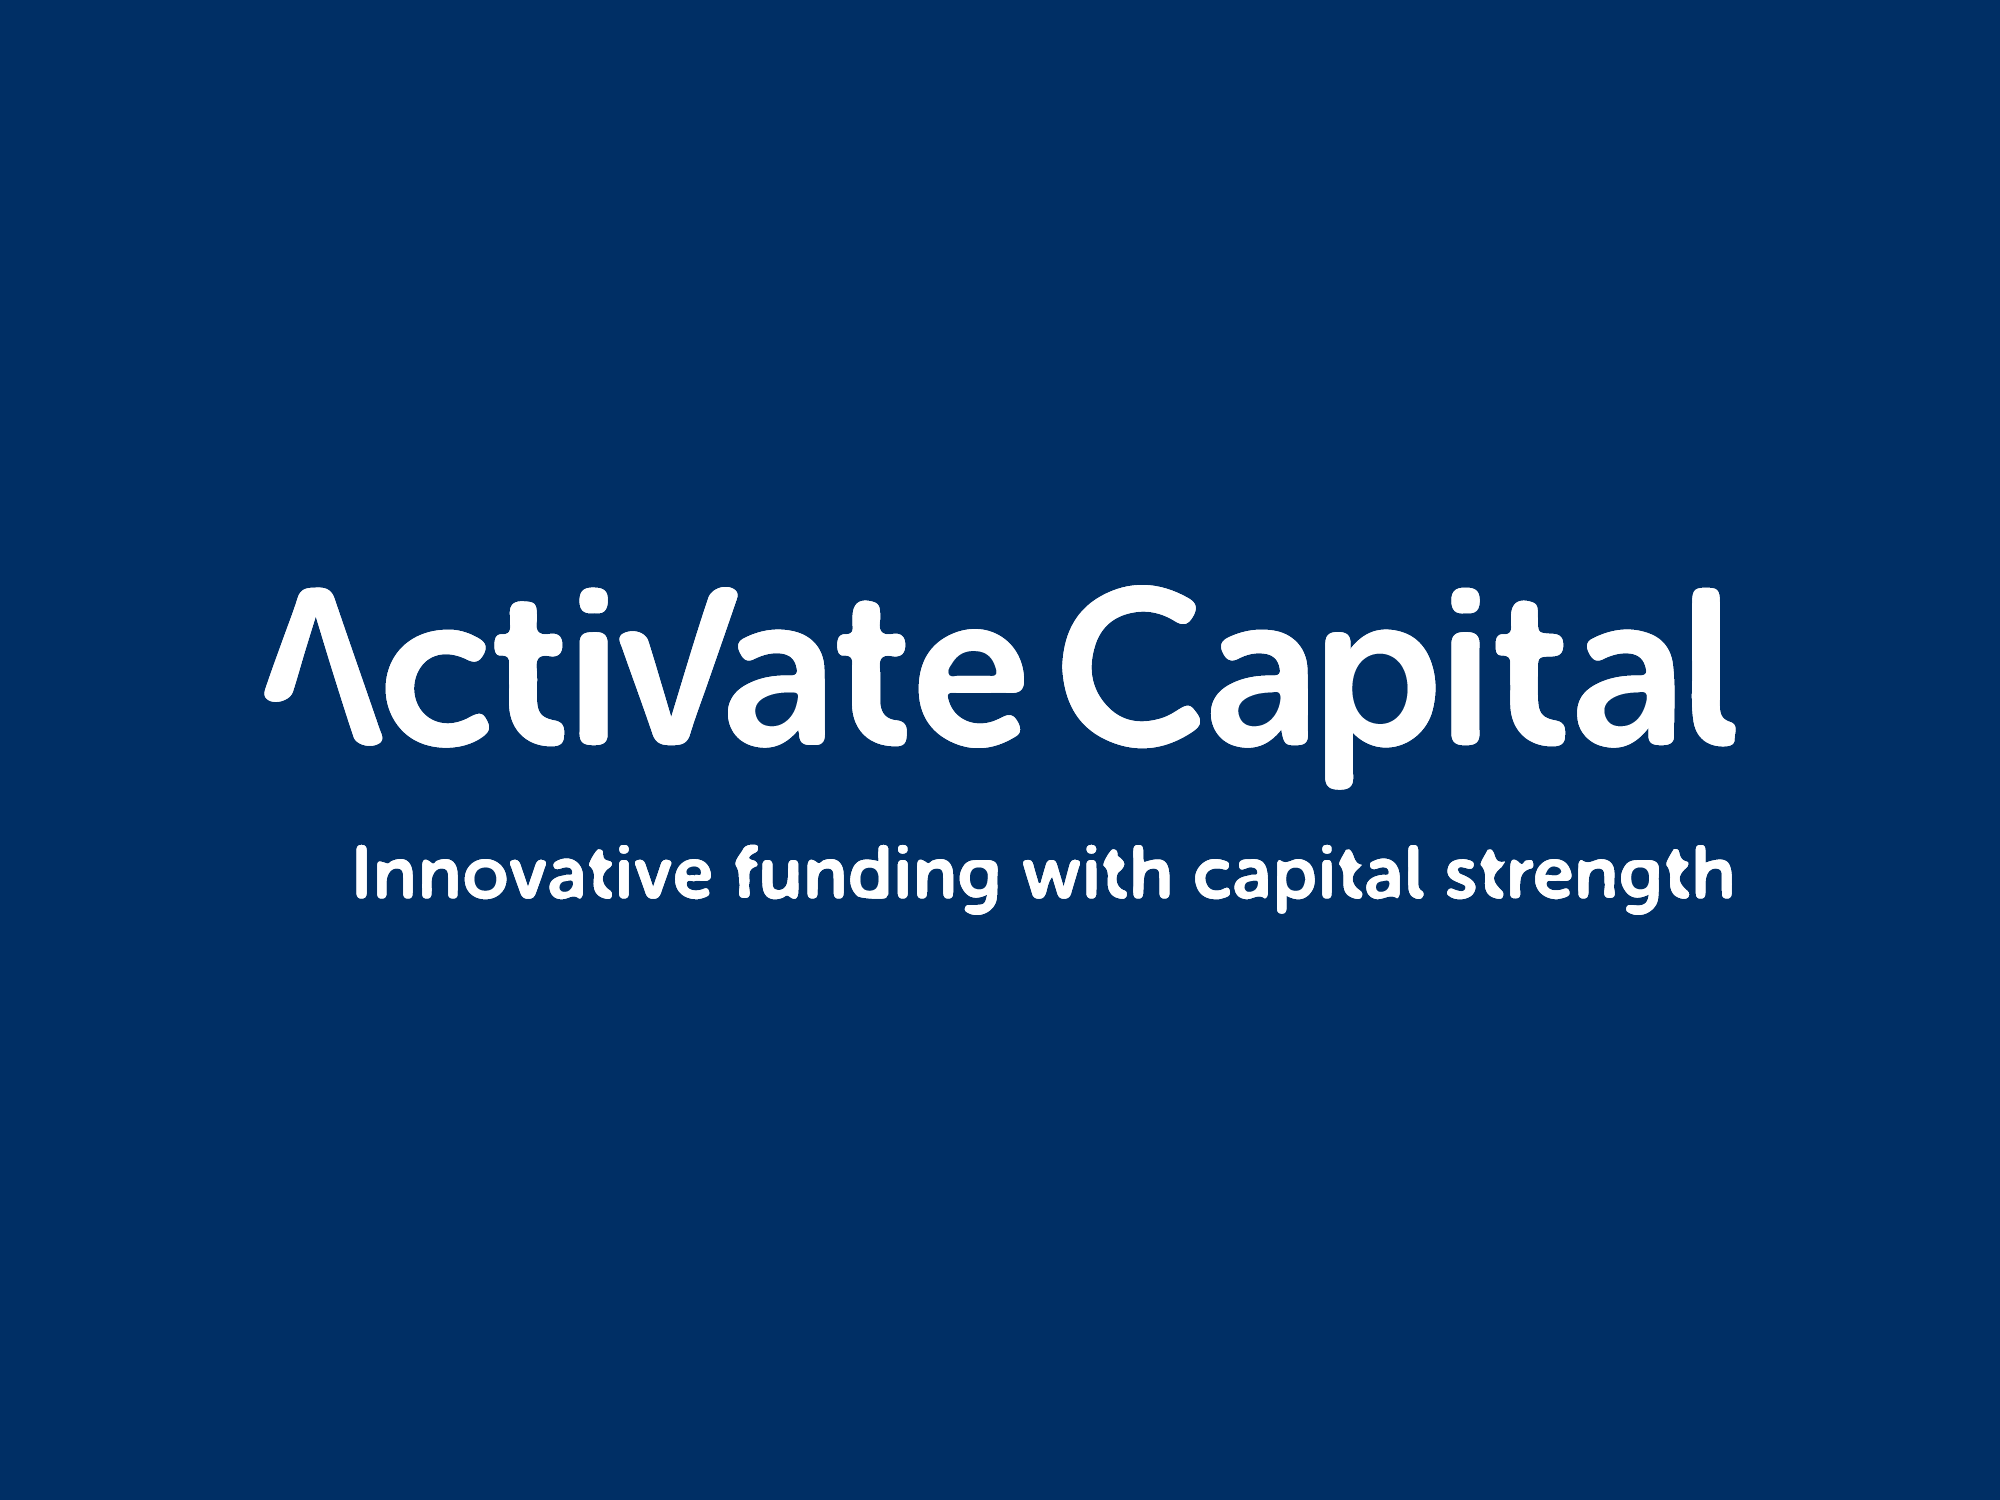 Activate Capital - Established and advised on fundraising for Activate Capital